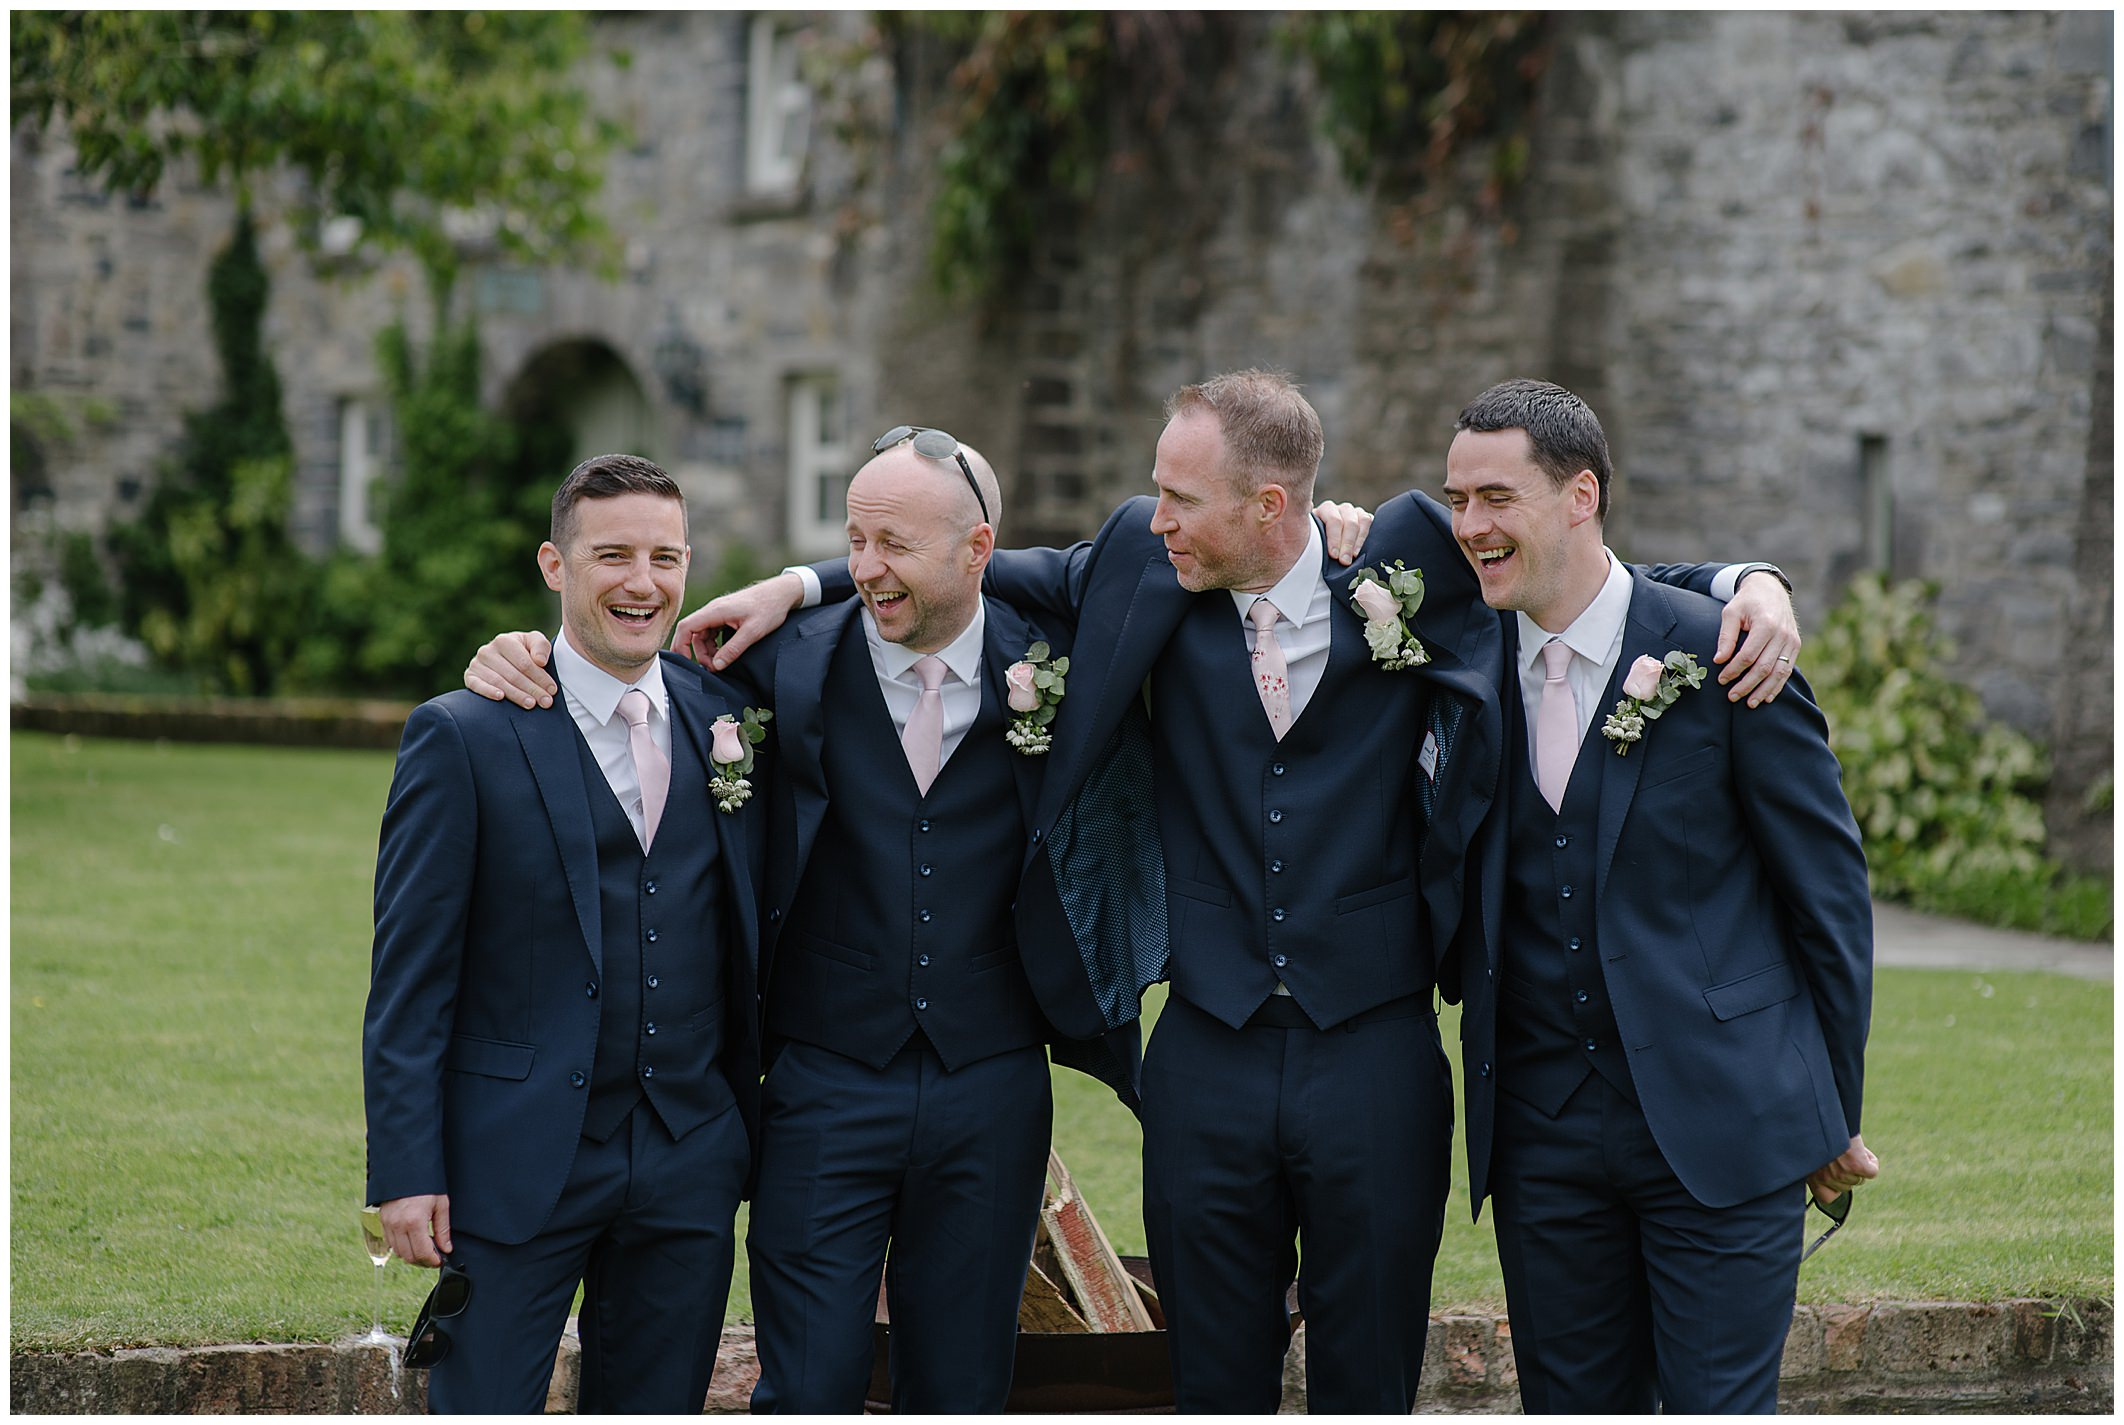 ballymagarvey-village-wedding-jude-browne-photography-107.jpg